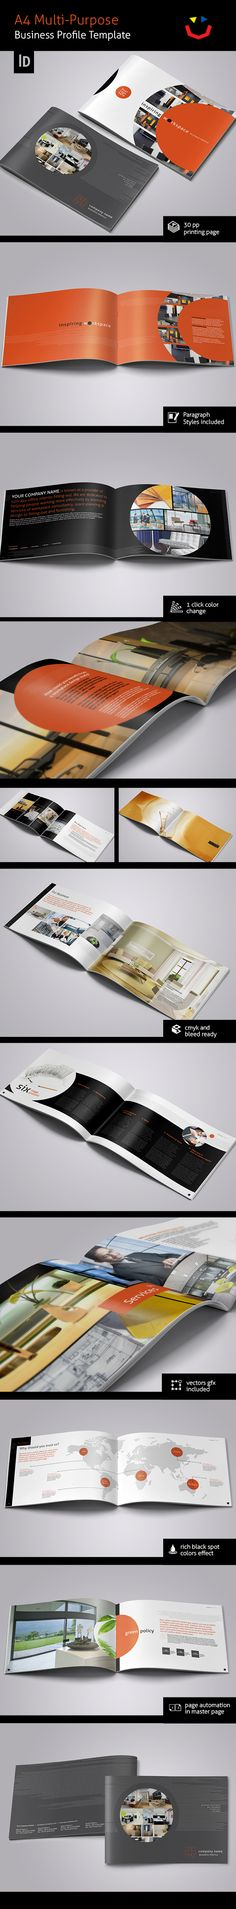 Interior Design Brochure Brochures, Brochure template and Interiors - interior design brochure template